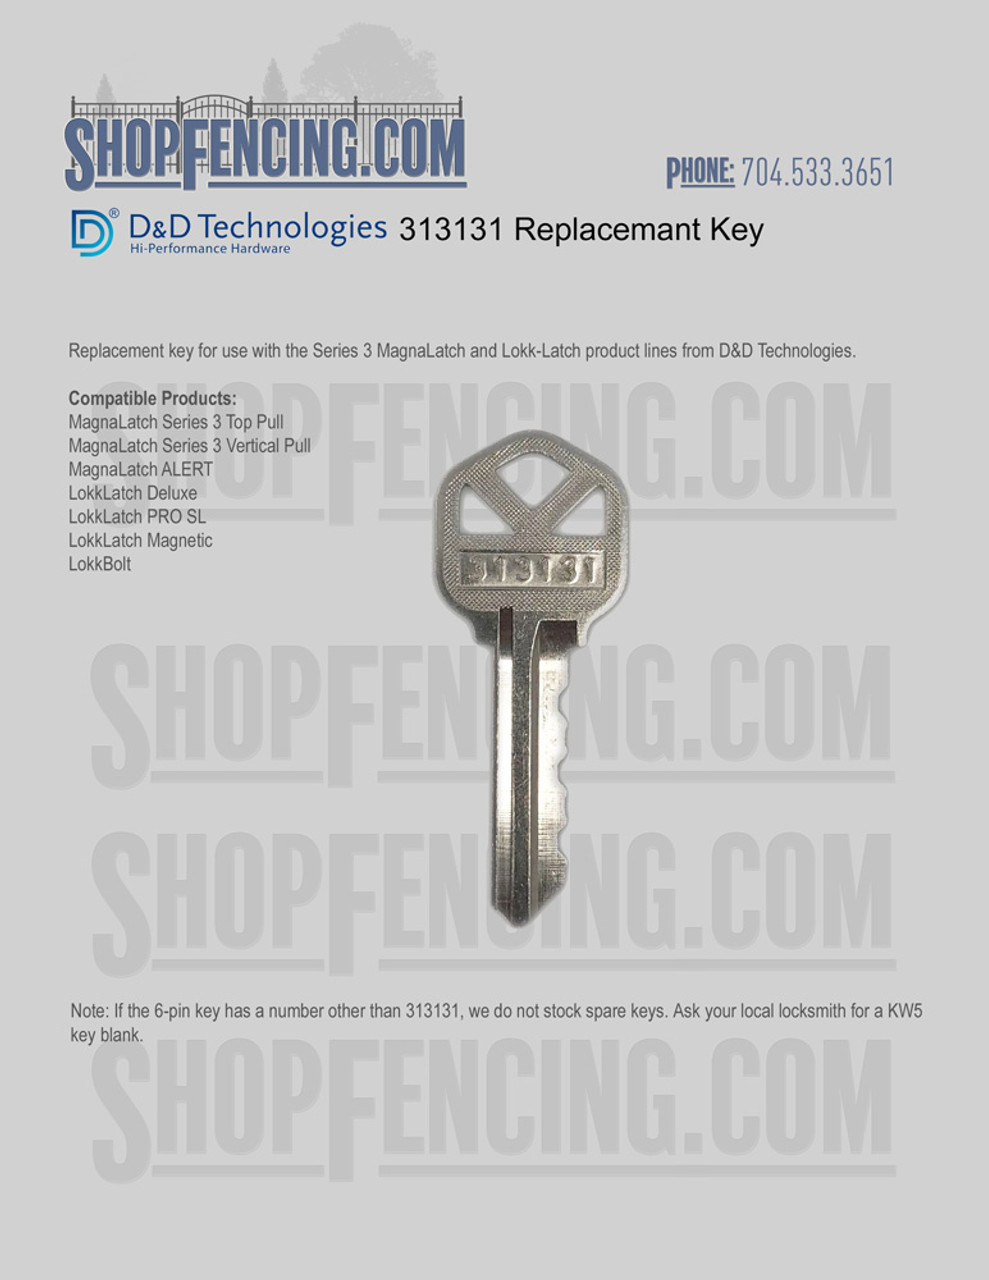 313131 Replacement Key For D&D Technologies Products